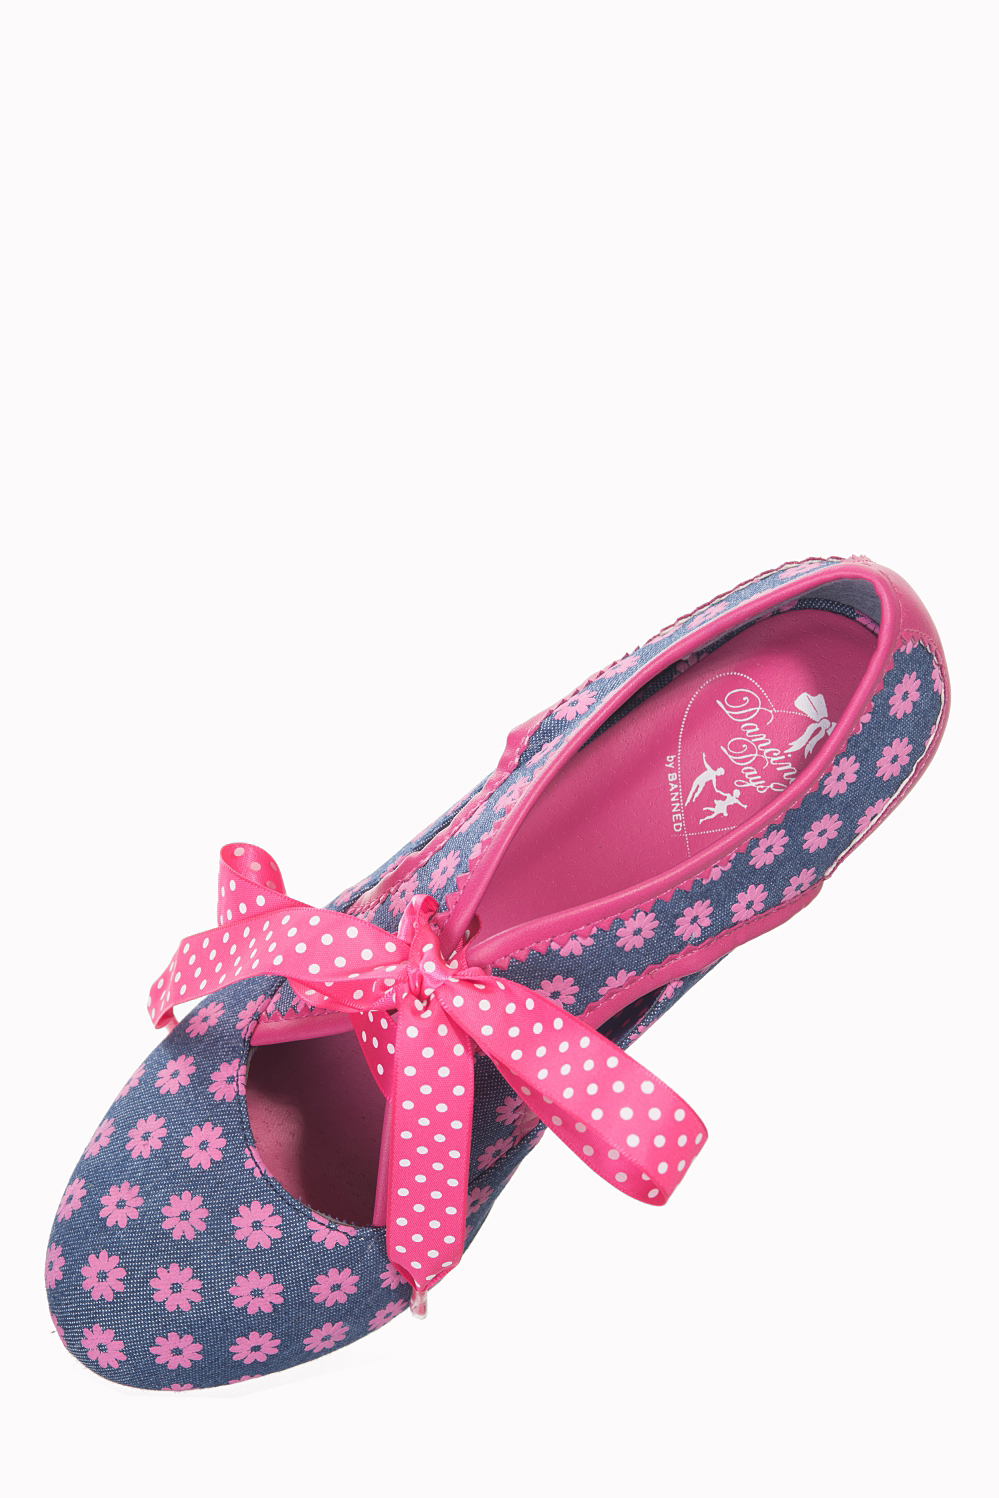 Dancing Days 50s Daisy Denim Pink Shoes